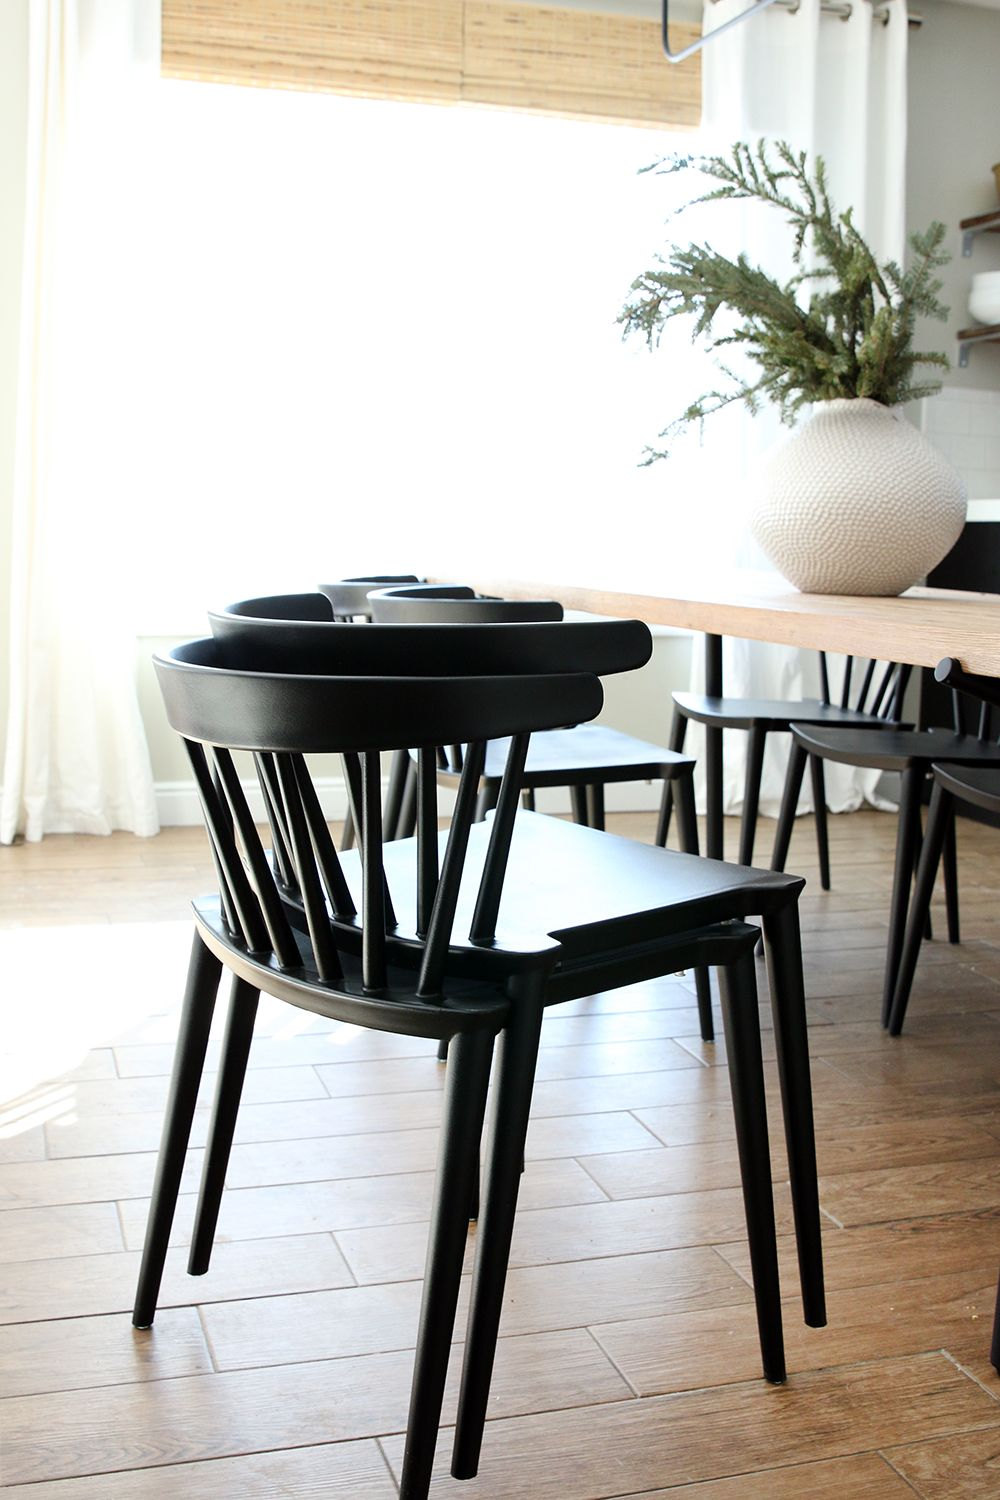 New Low Back Modern Spindle Chairs For The Dining Room Chris Loves Julia